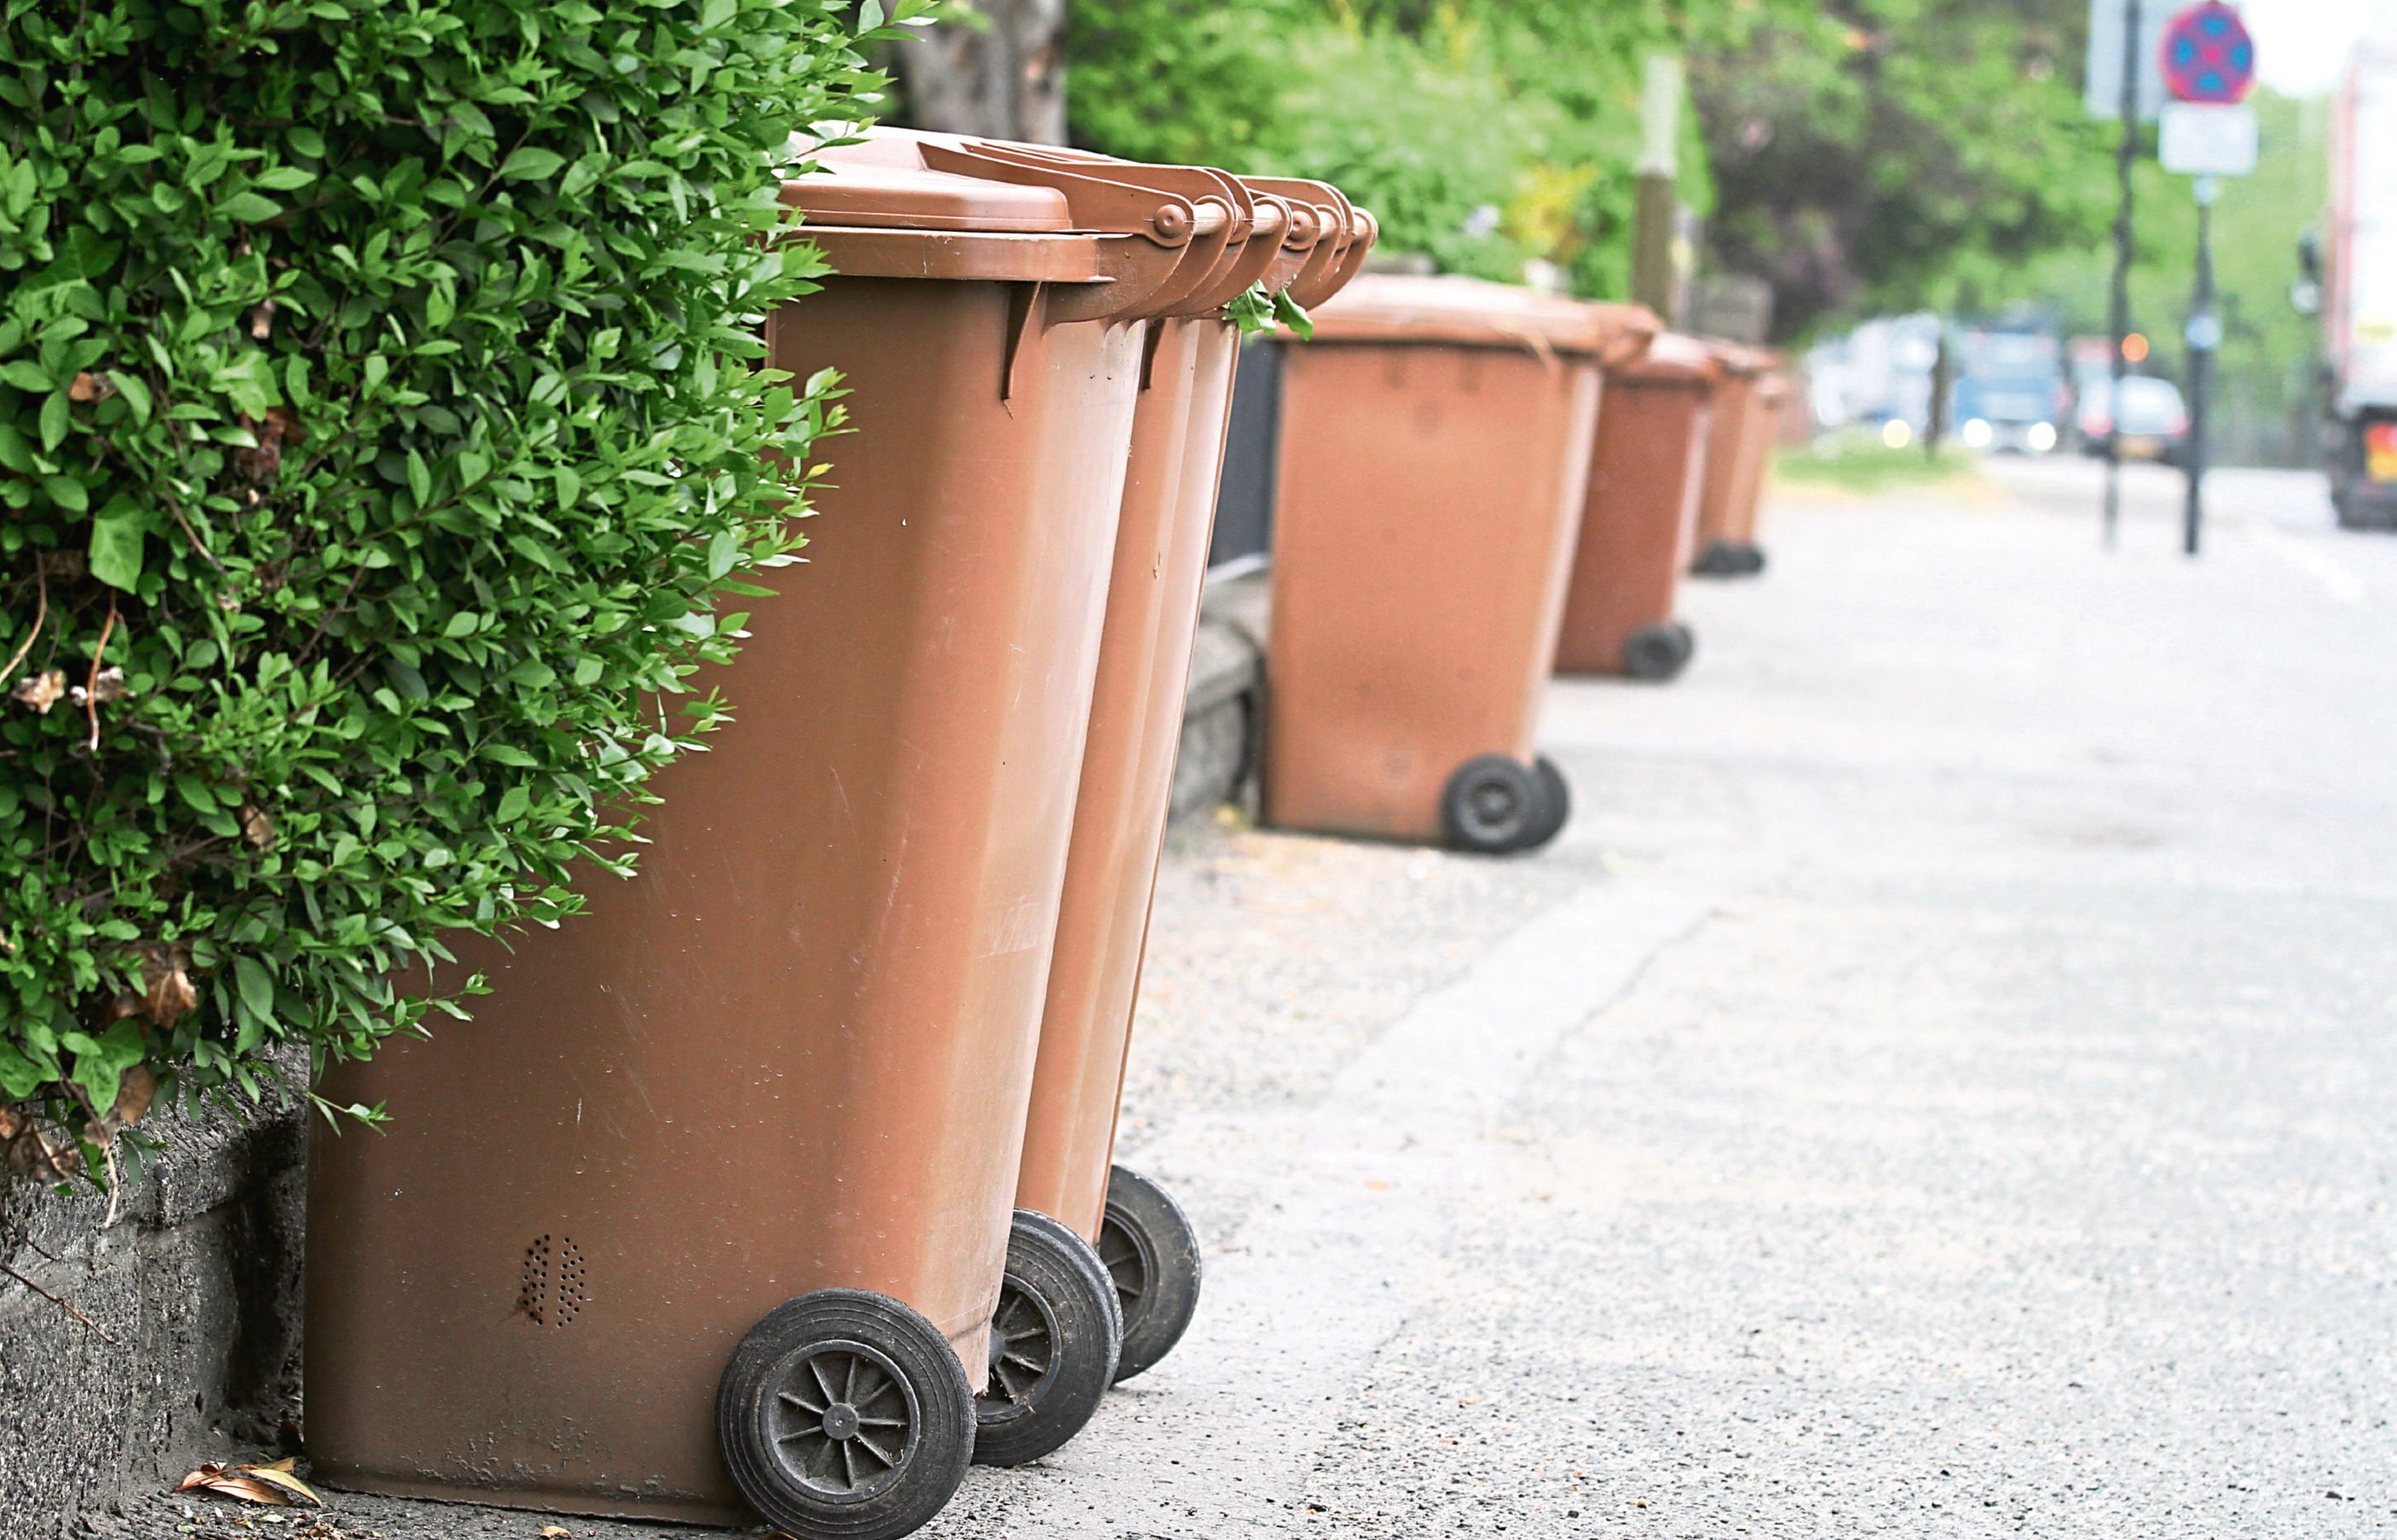 Brown bins out for collection.